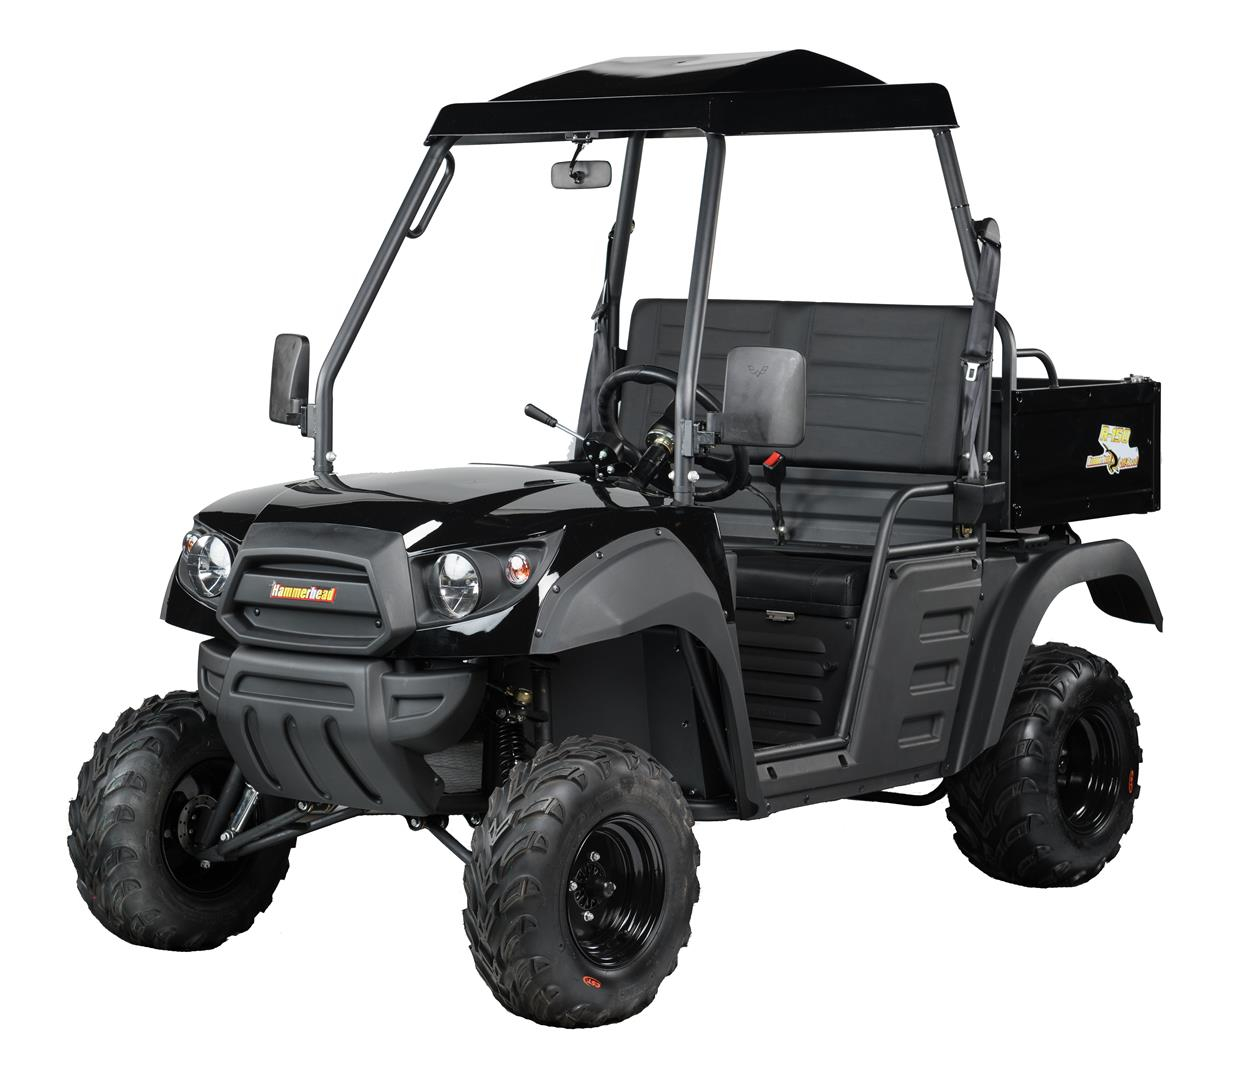 Hammerhead R-150™ Utility Vehicle - Black